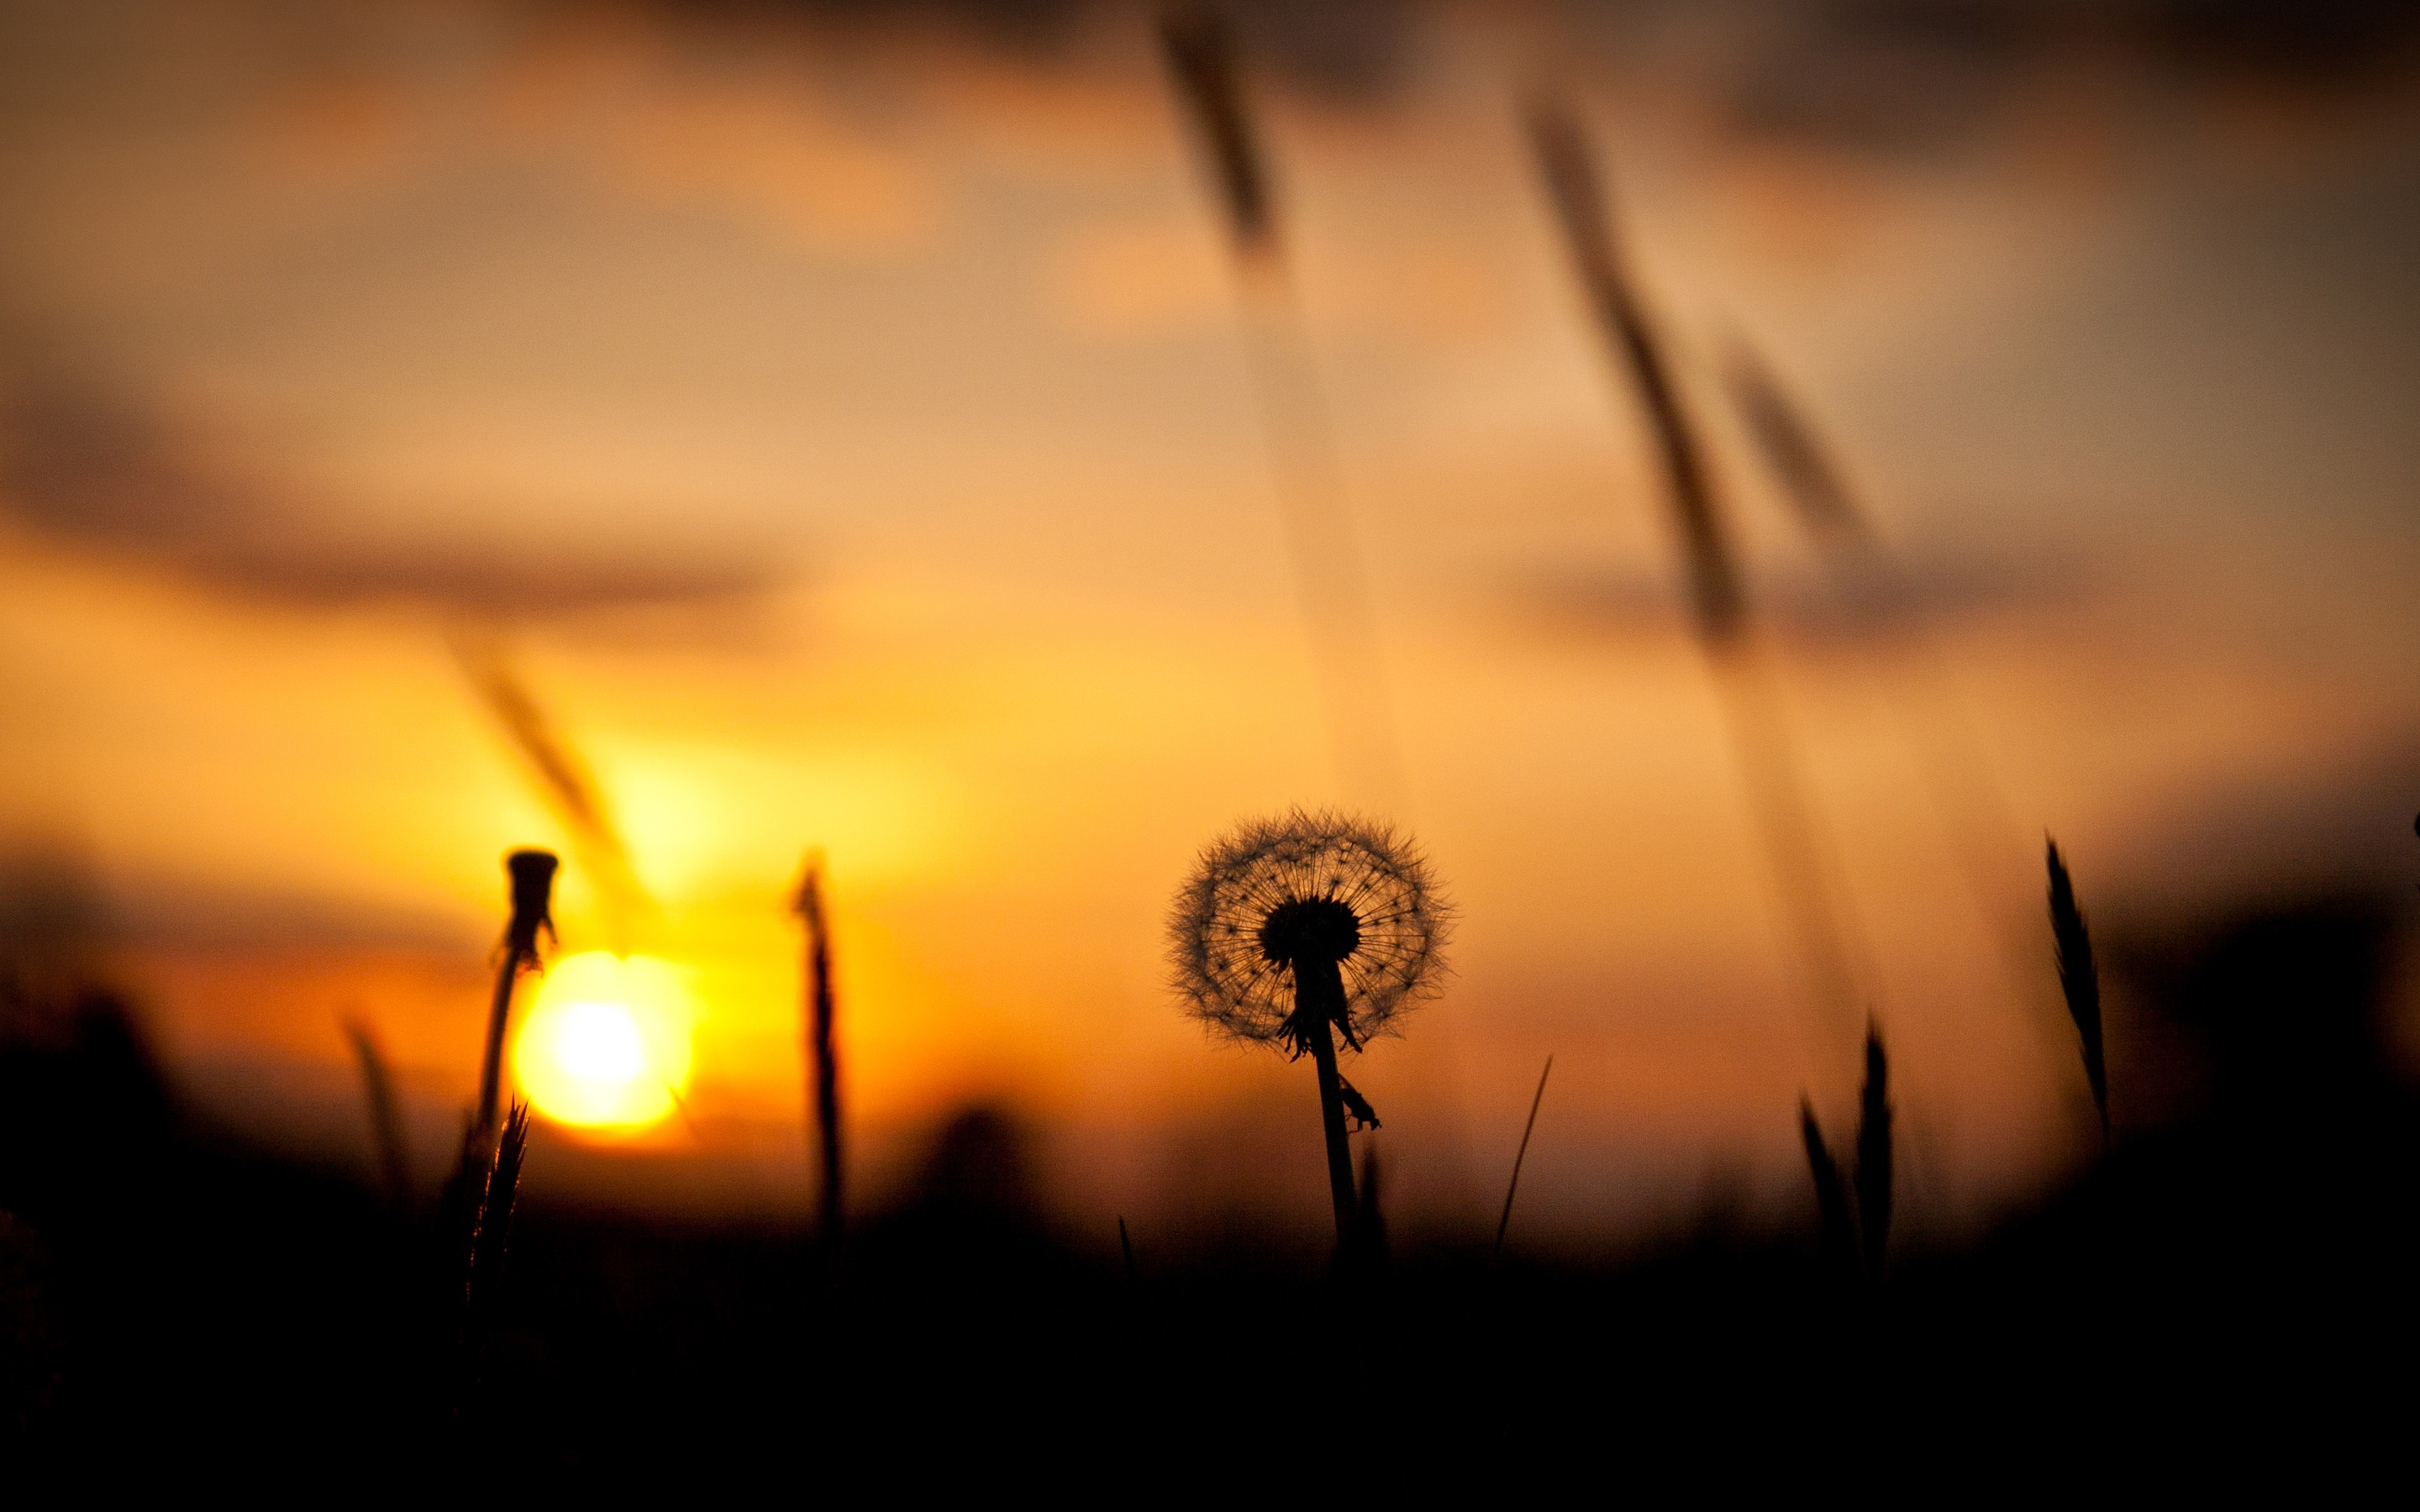 2880x1800 Nature Sunset, Grass, Dandelion, Silhouette, Red Sky Wallpaper